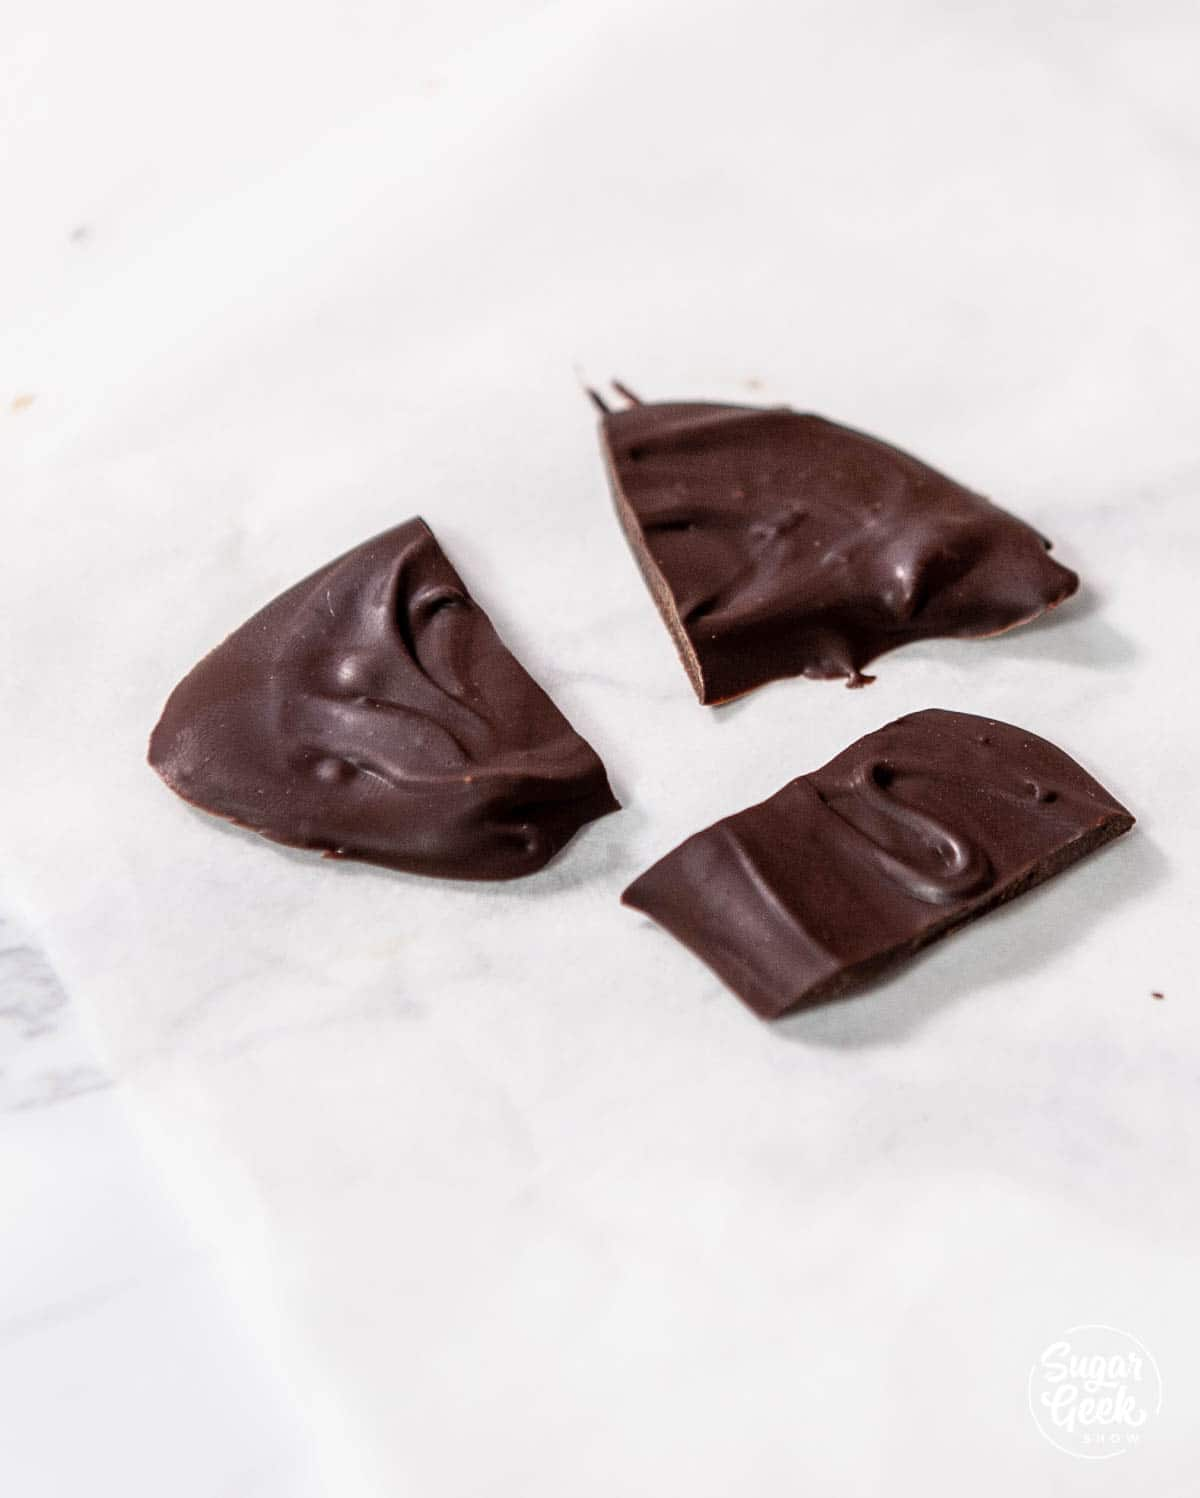 three broken pieces of chocolate